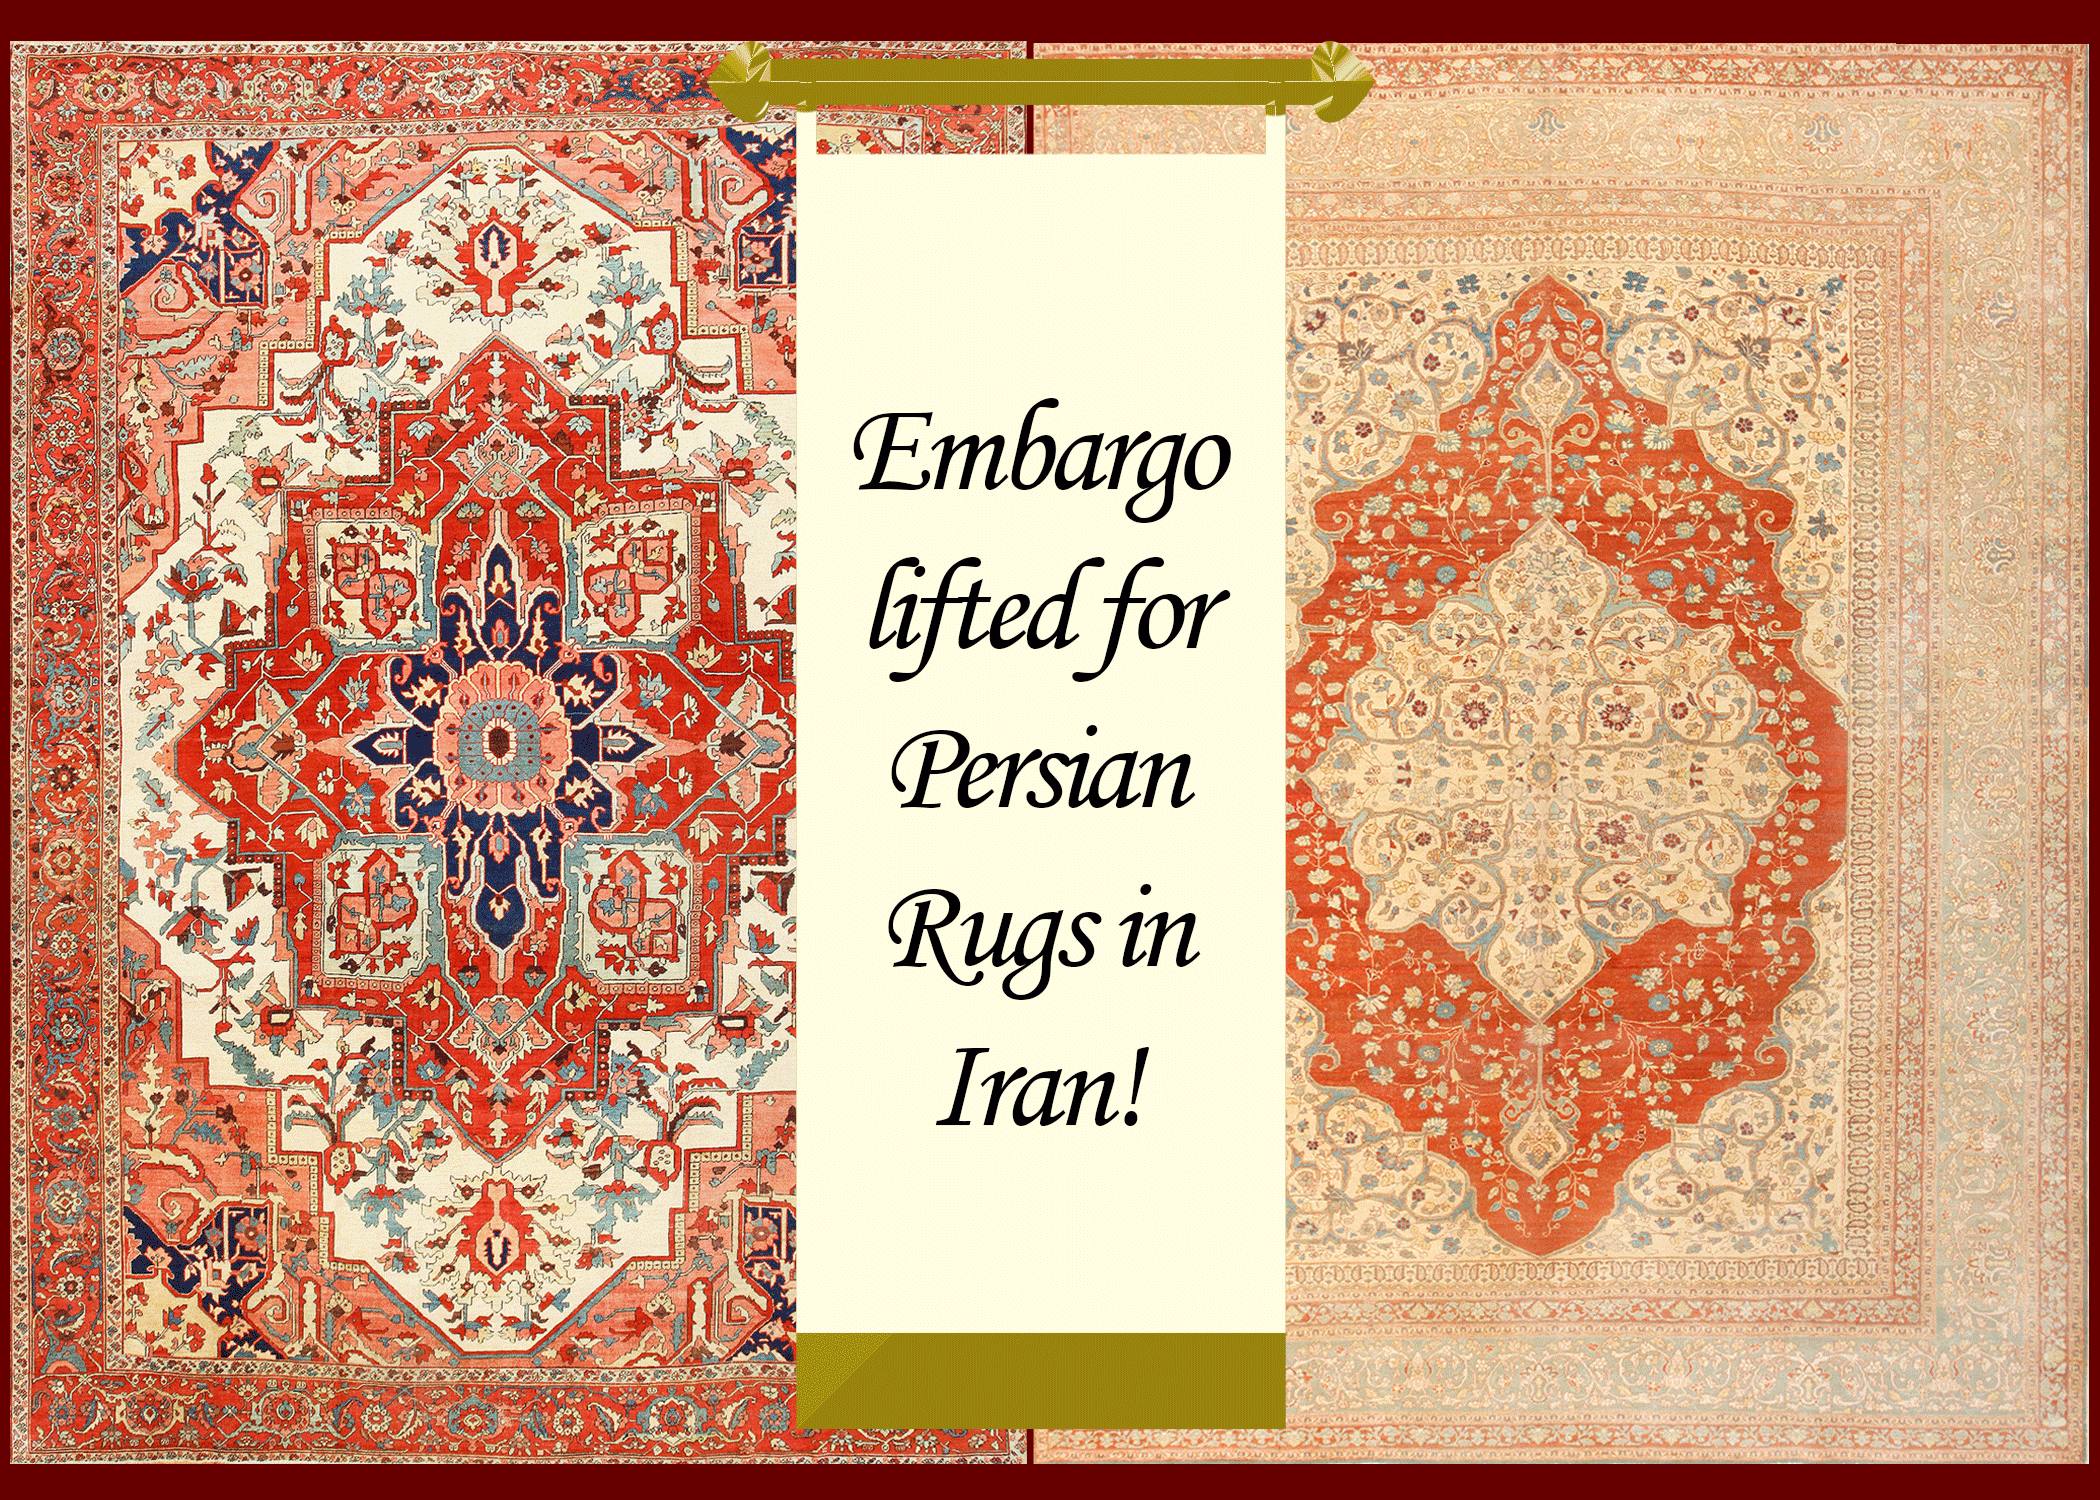 Embargo Lifted On Persian Rugs In Iran